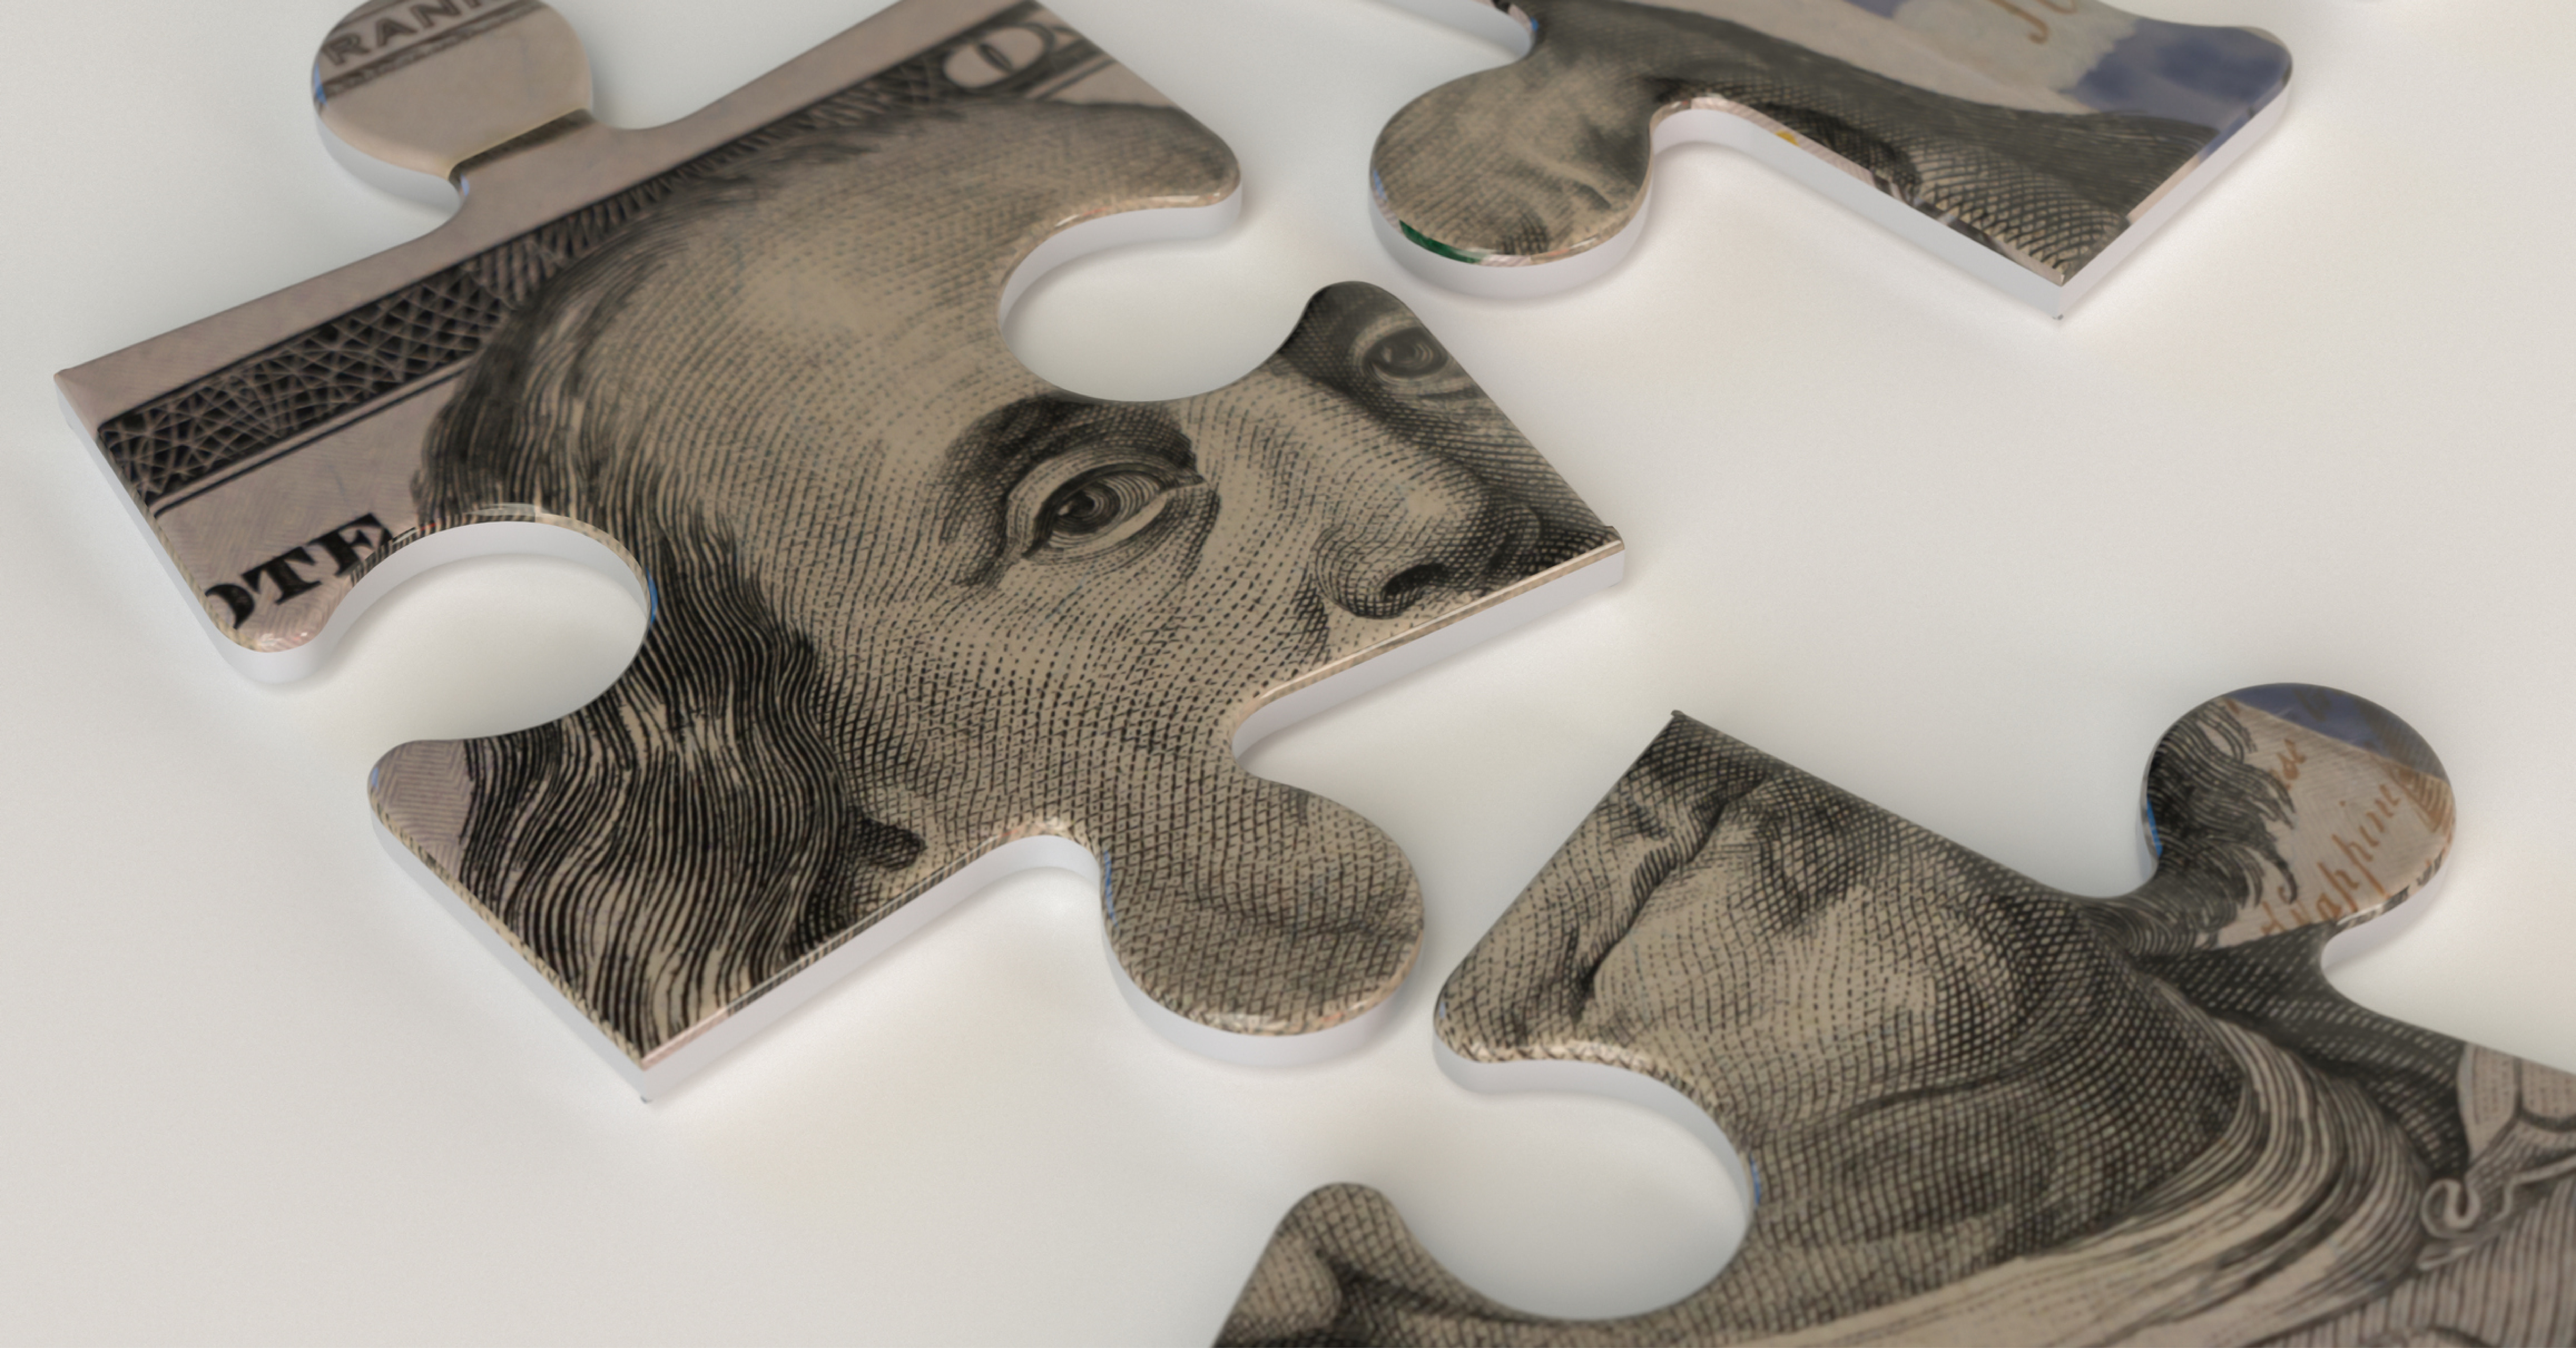 jigsaw puzzle pieces showing parts of Ben Franklin's face from the hundred dollar bill